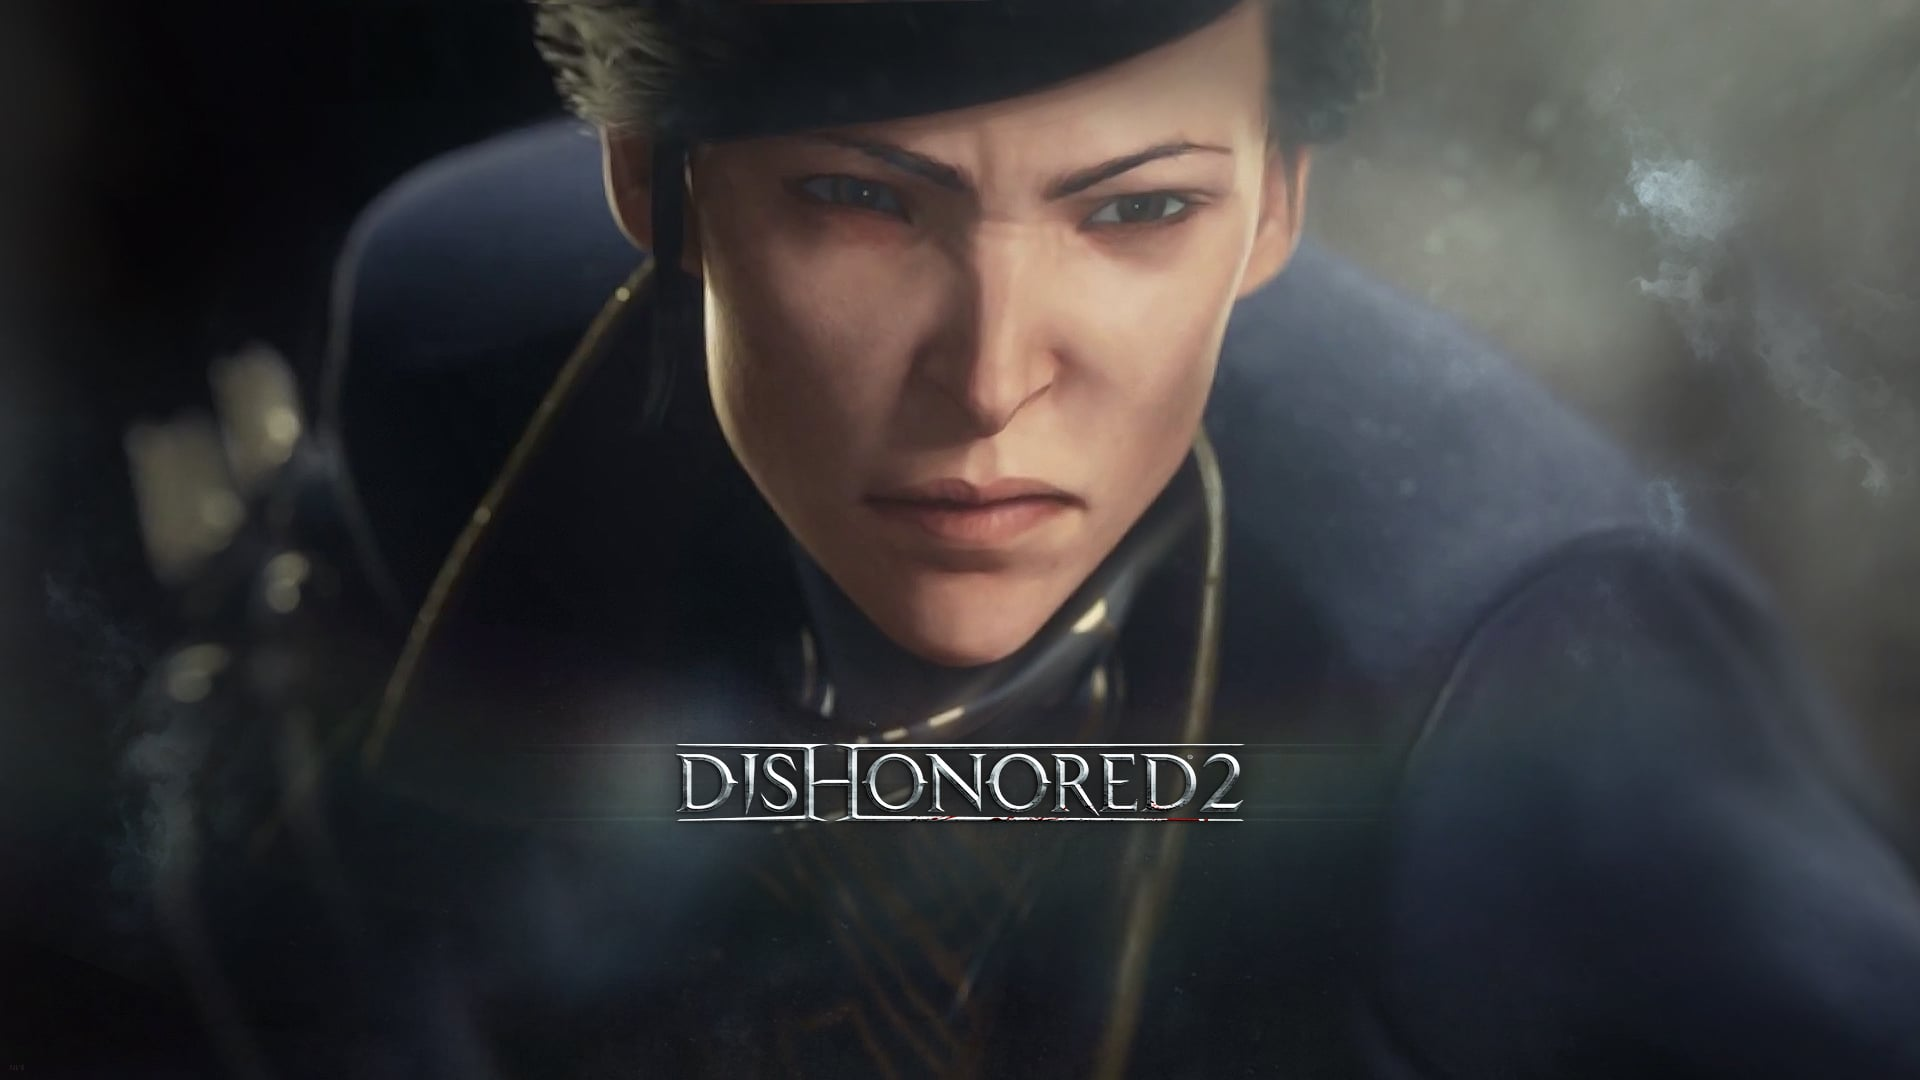 Dishonored 2 computer wallpaper